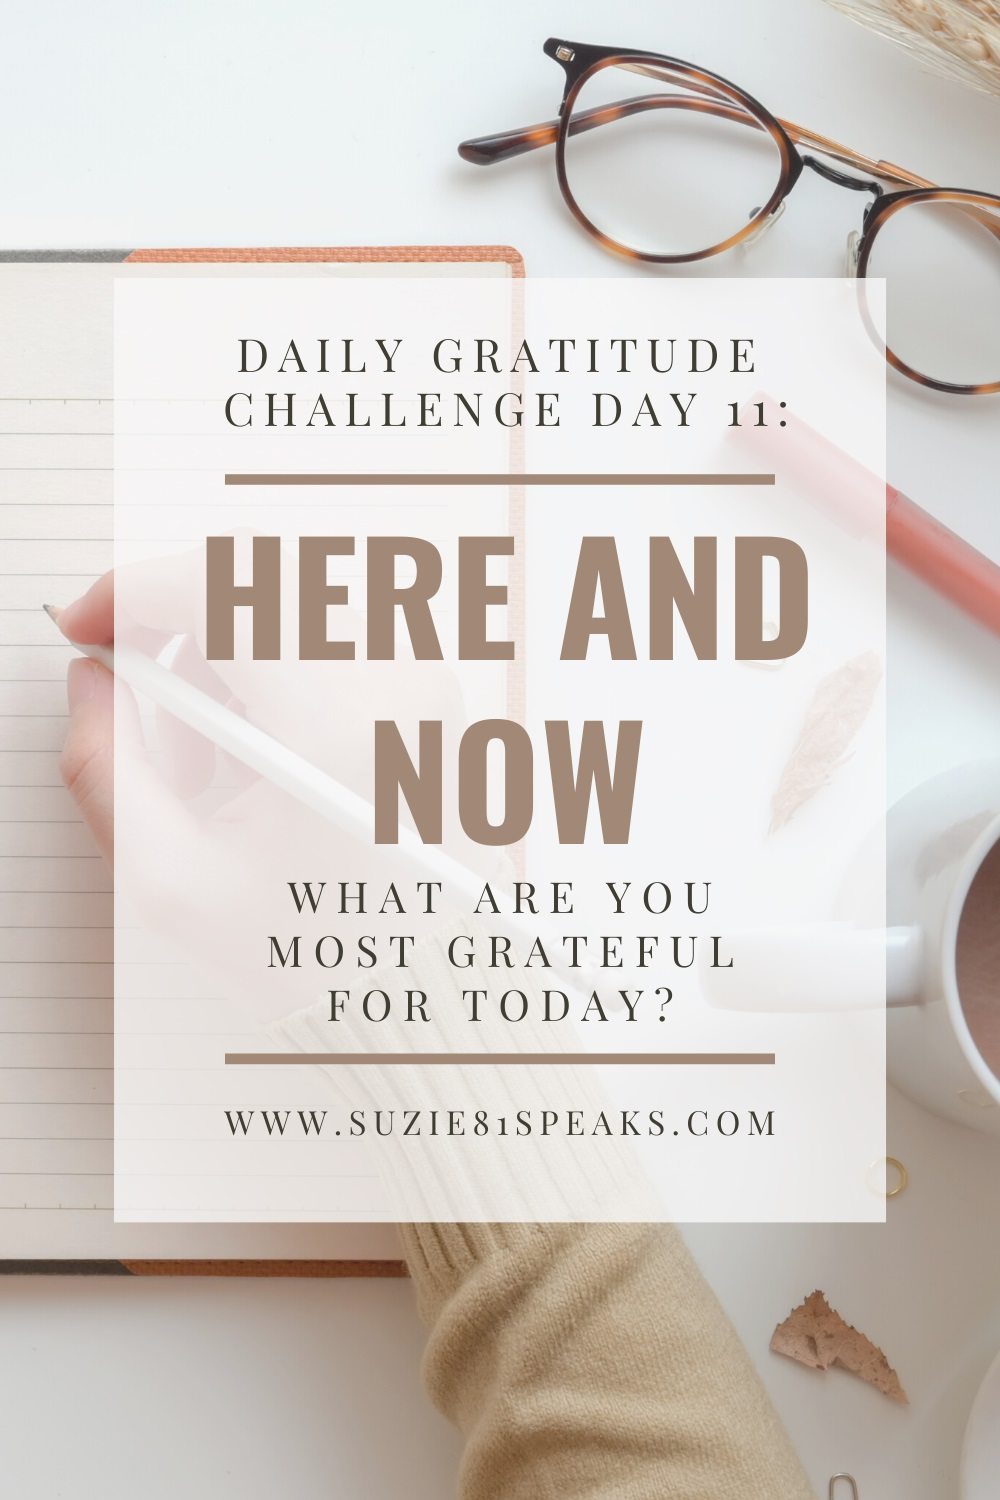 Daily Gratitude Challenge Day 11: Here and Now